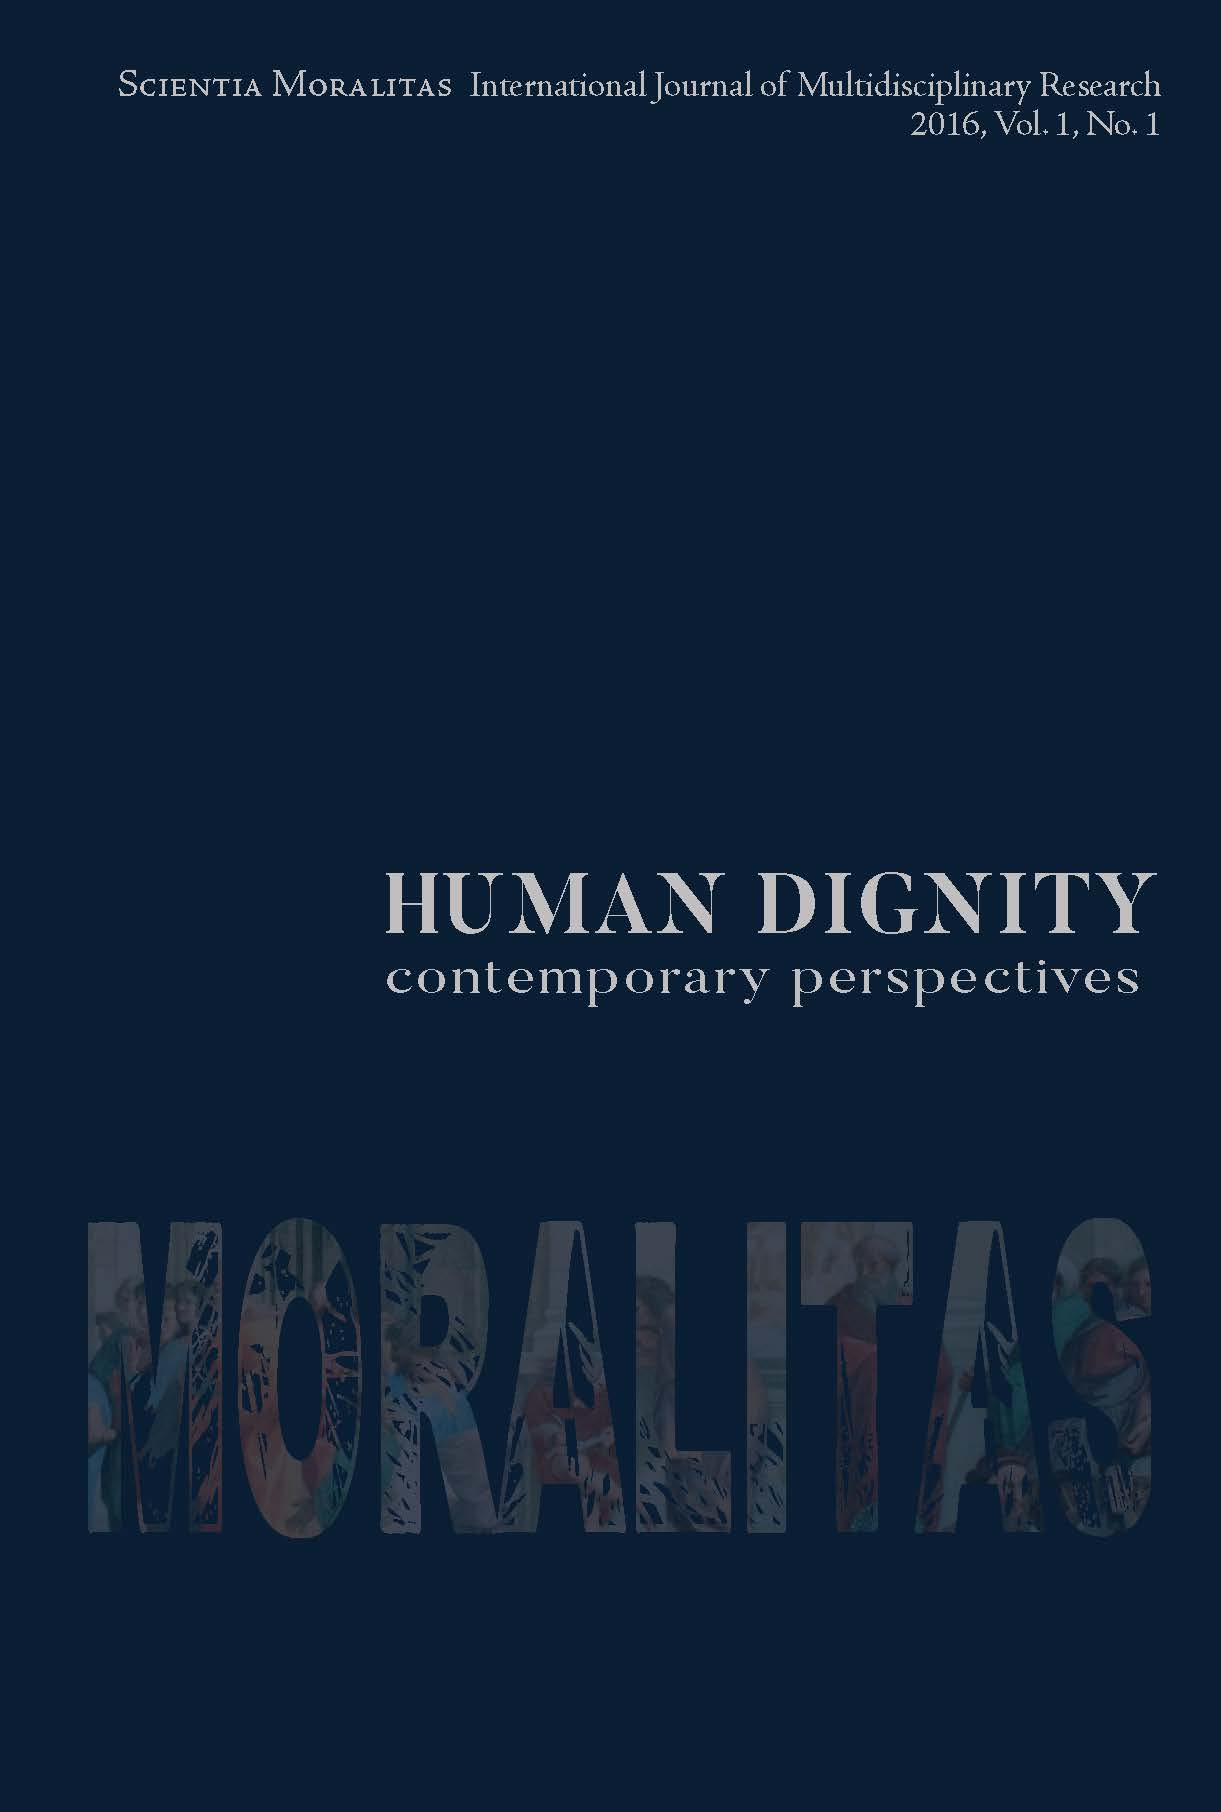 Plea for Human Dignity Cover Image